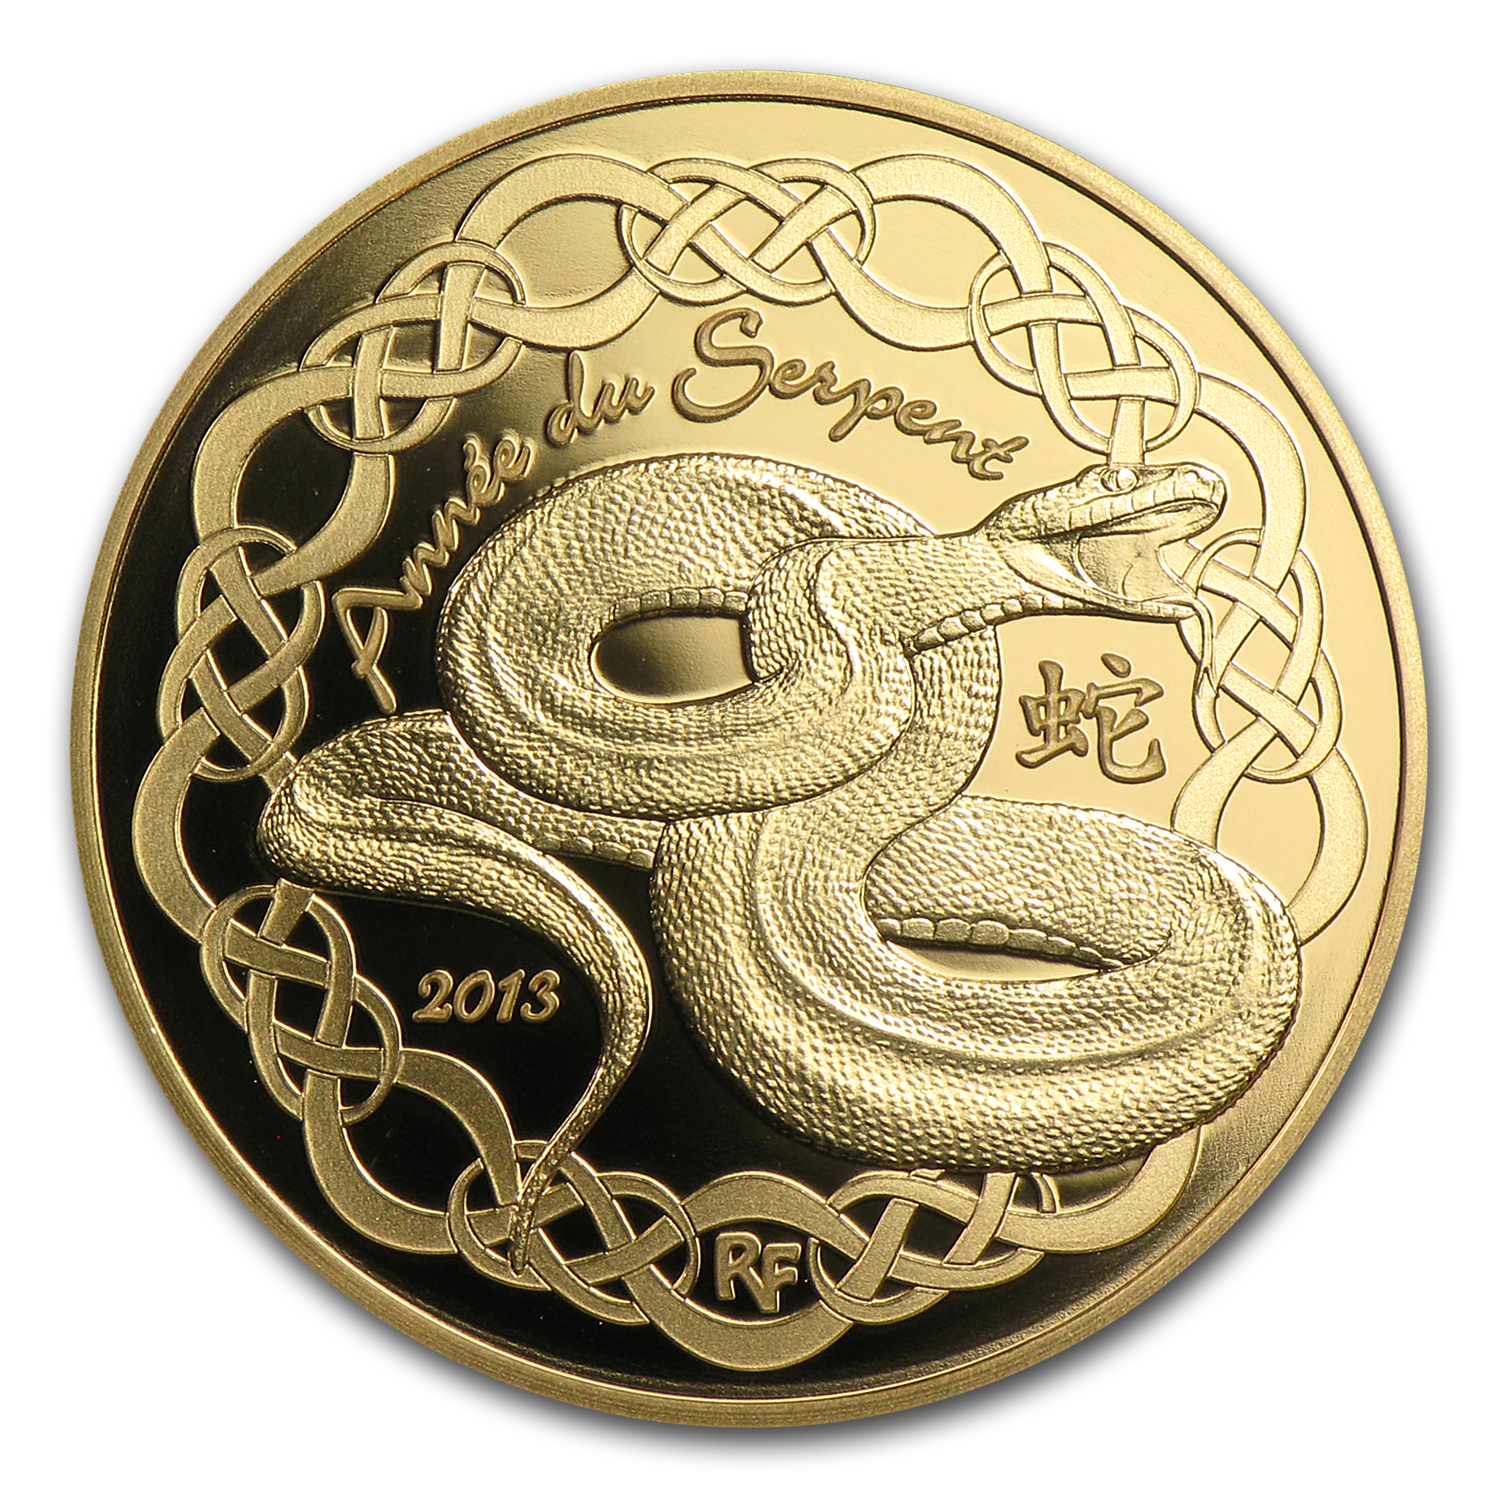 2013 1/4 oz Gold €50 Proof Year of the Snake - Lunar Series